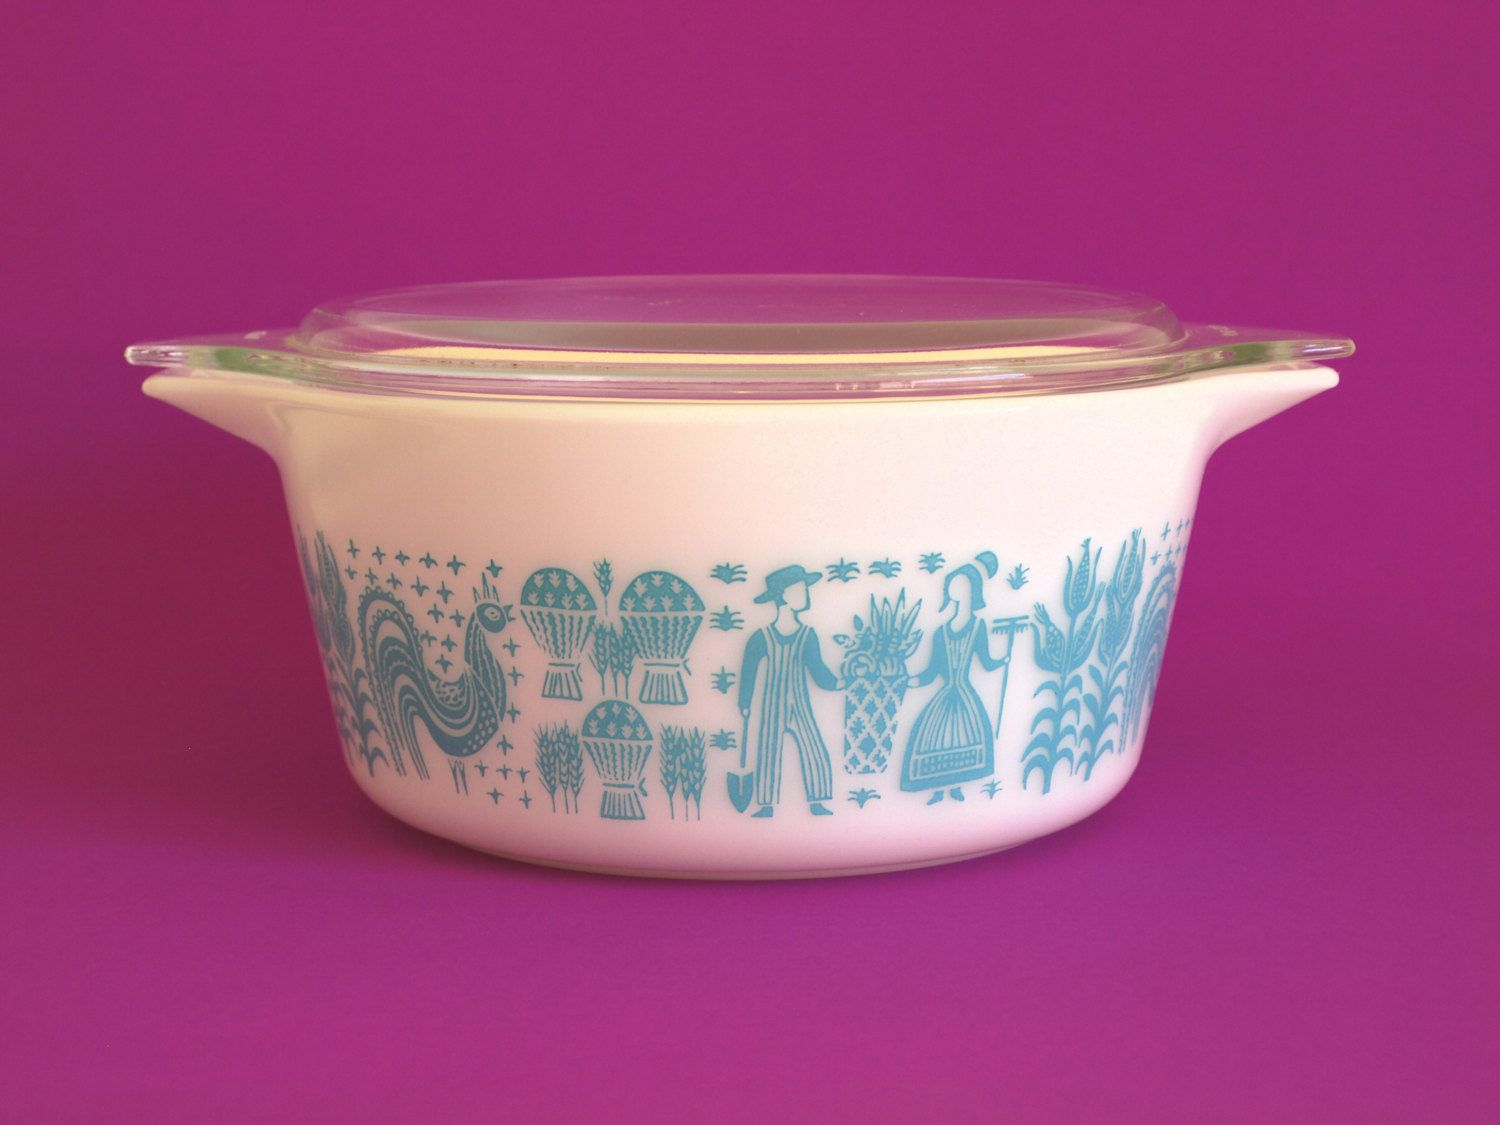 pyrex butterprint 474 casserole dish with glass lid